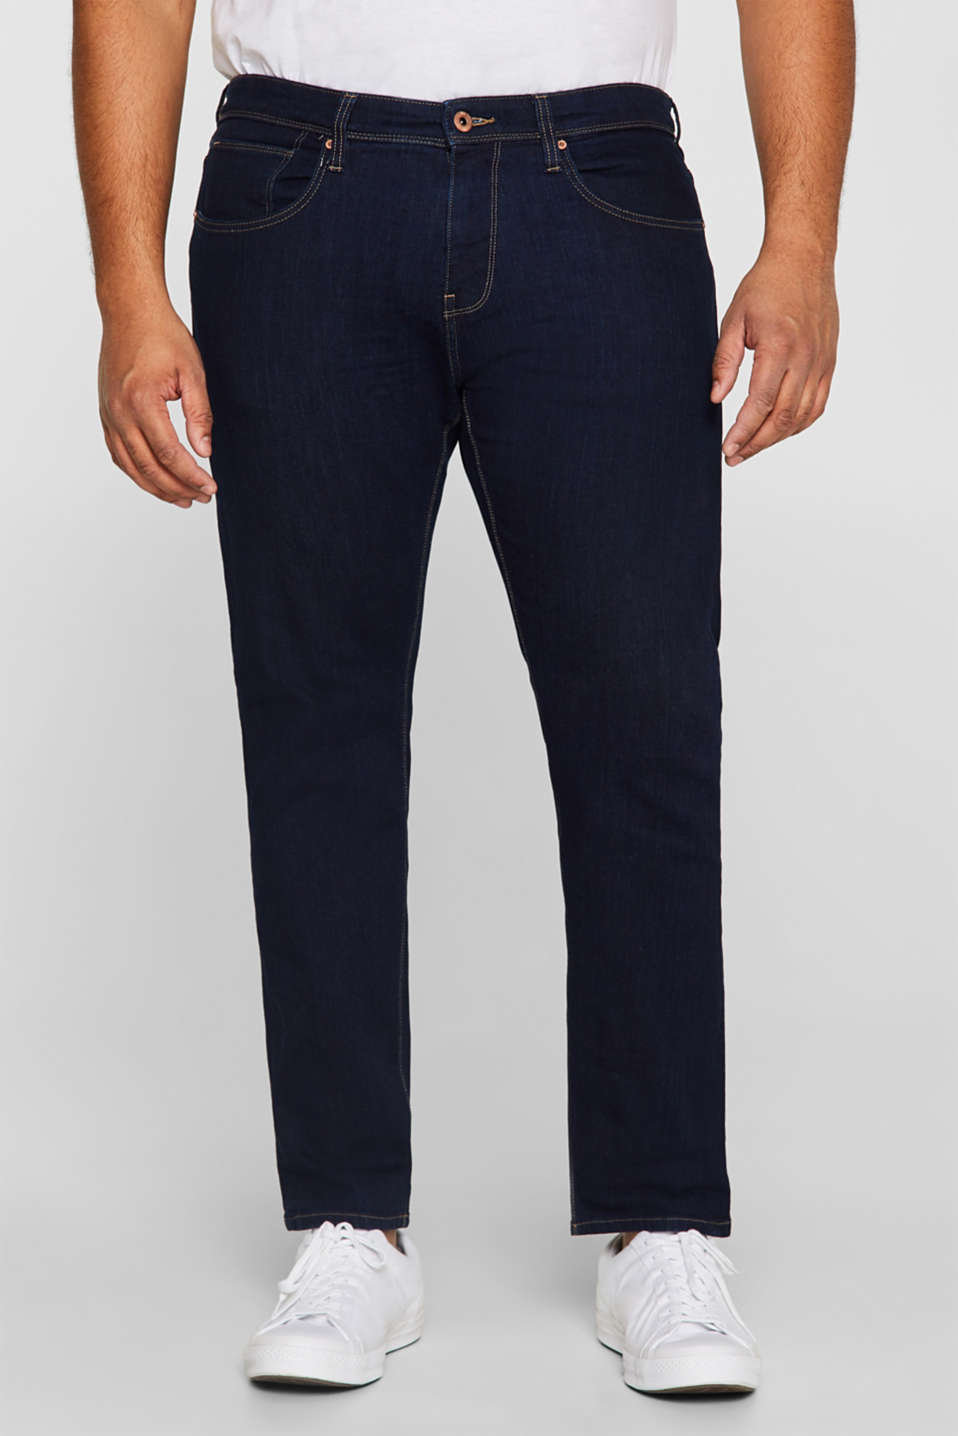 Esprit - Stretch jeans with washed-out effects